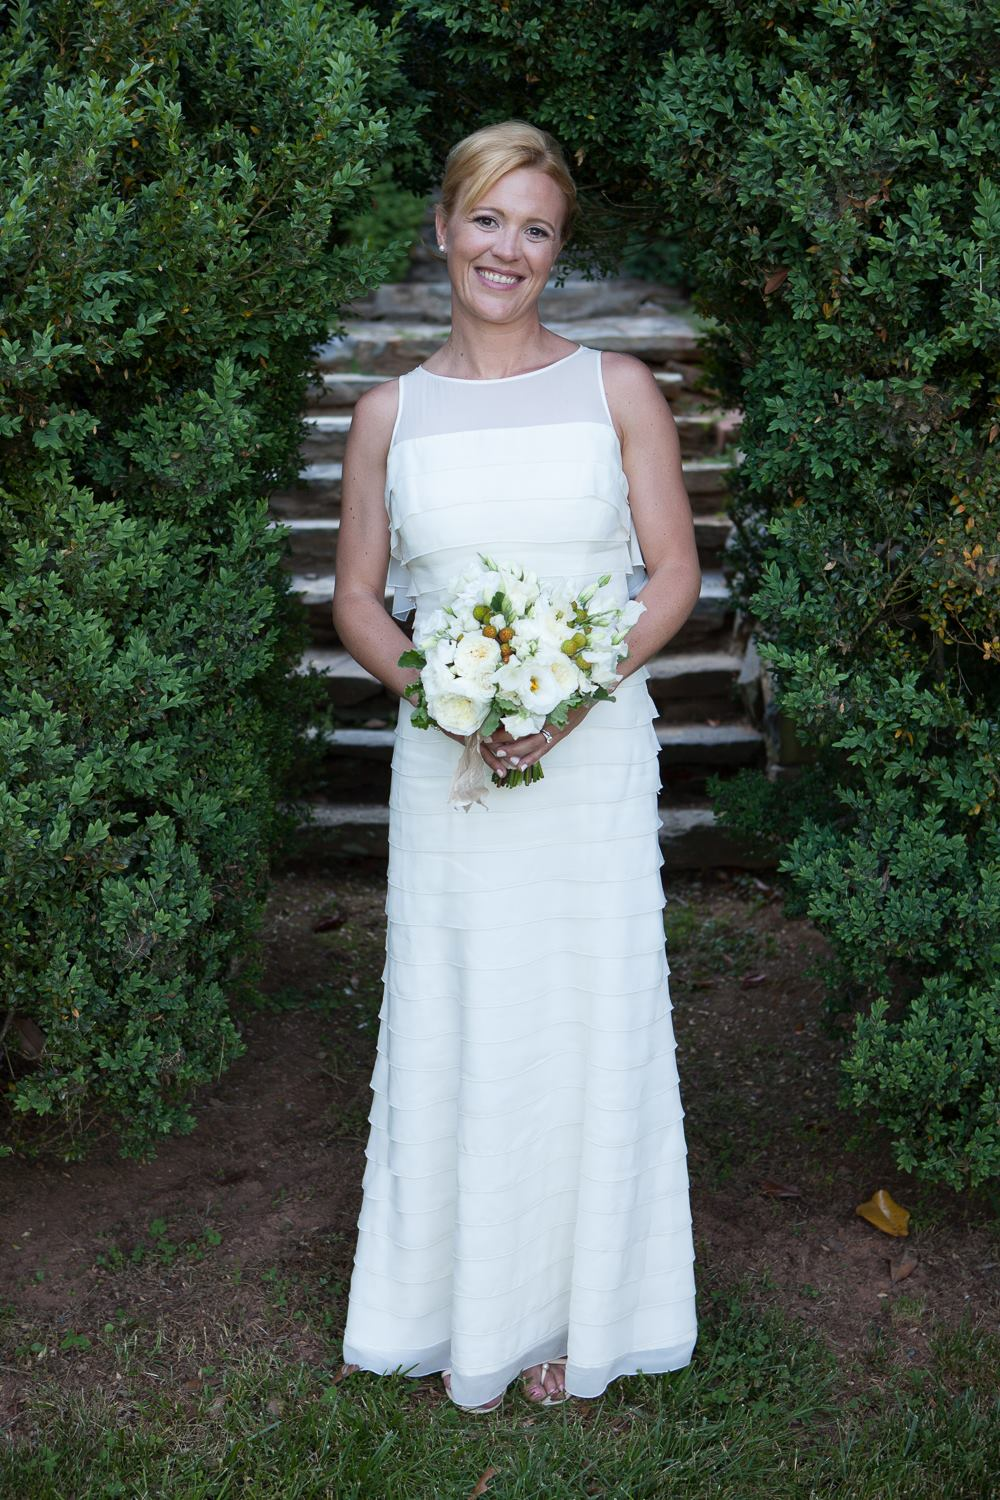 Beautiful bride at Salamander Resort - Middleburg,VA.